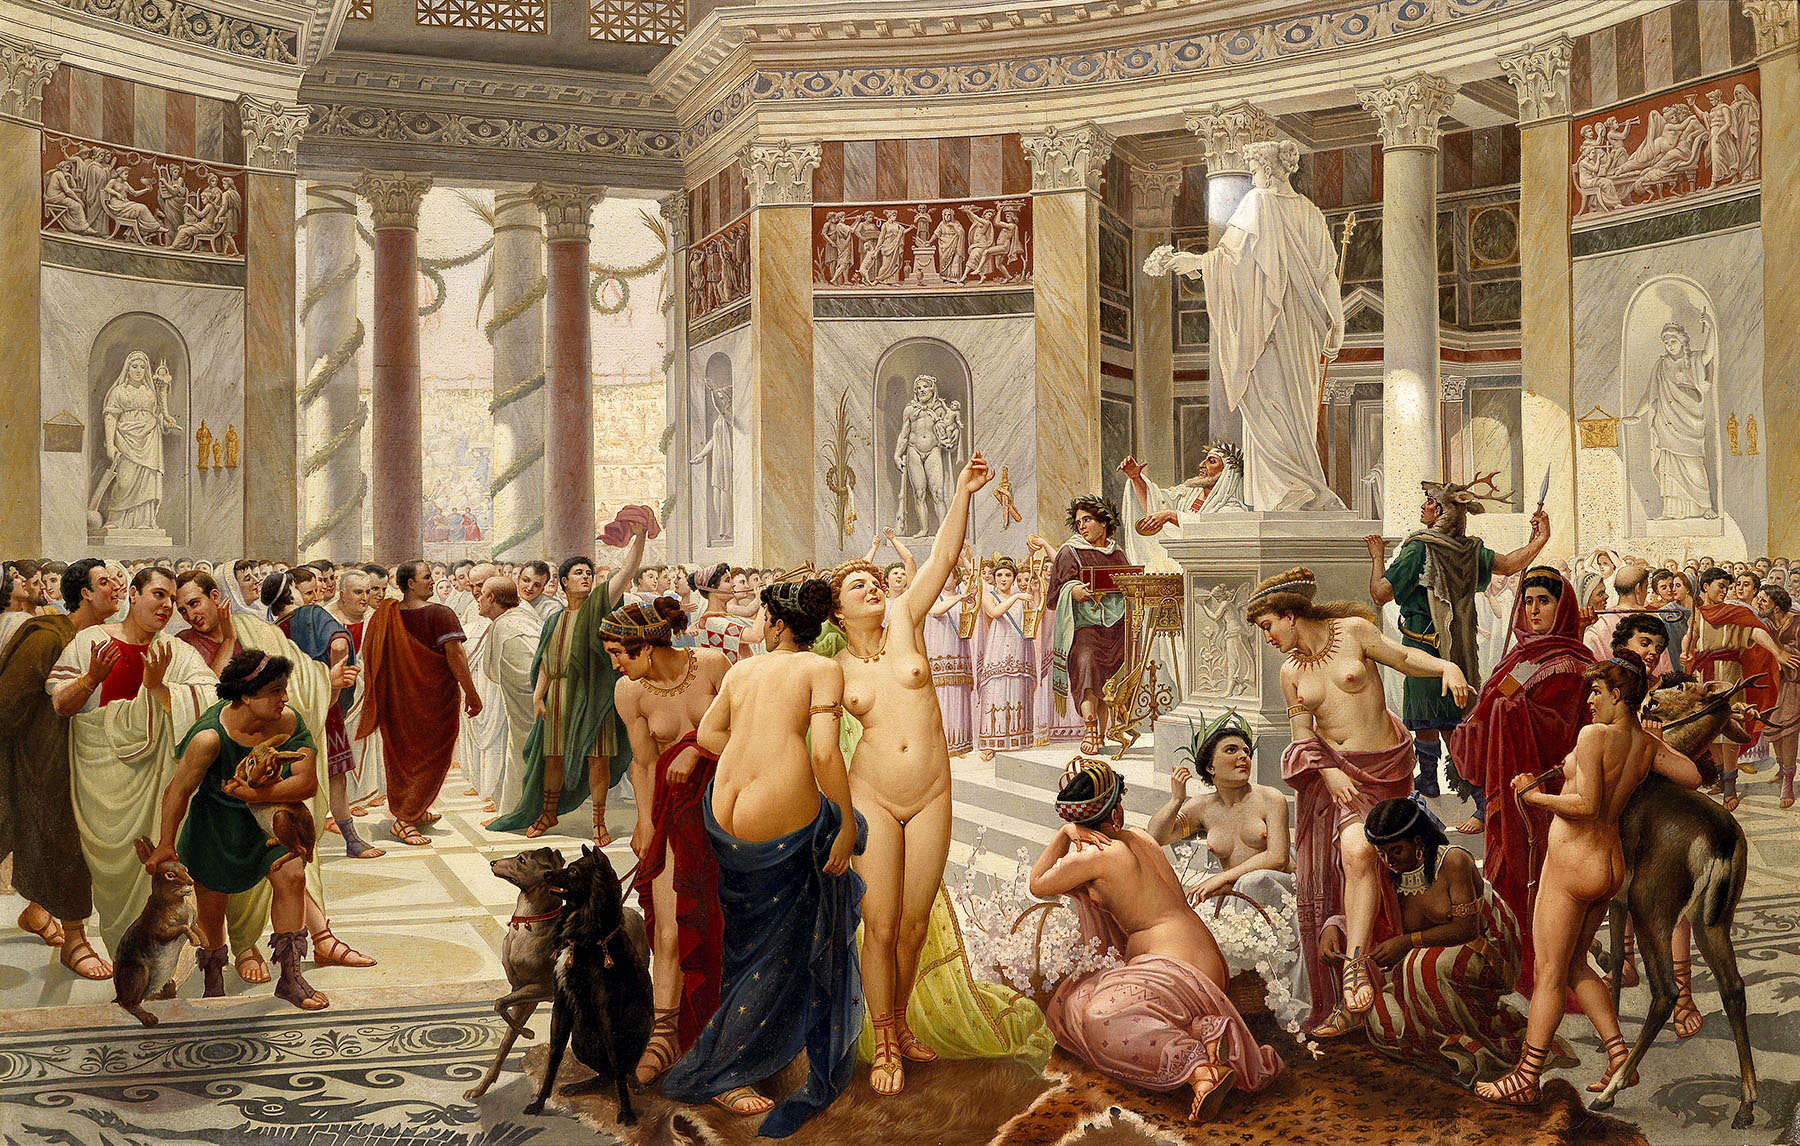 Luxury in ancient Rome